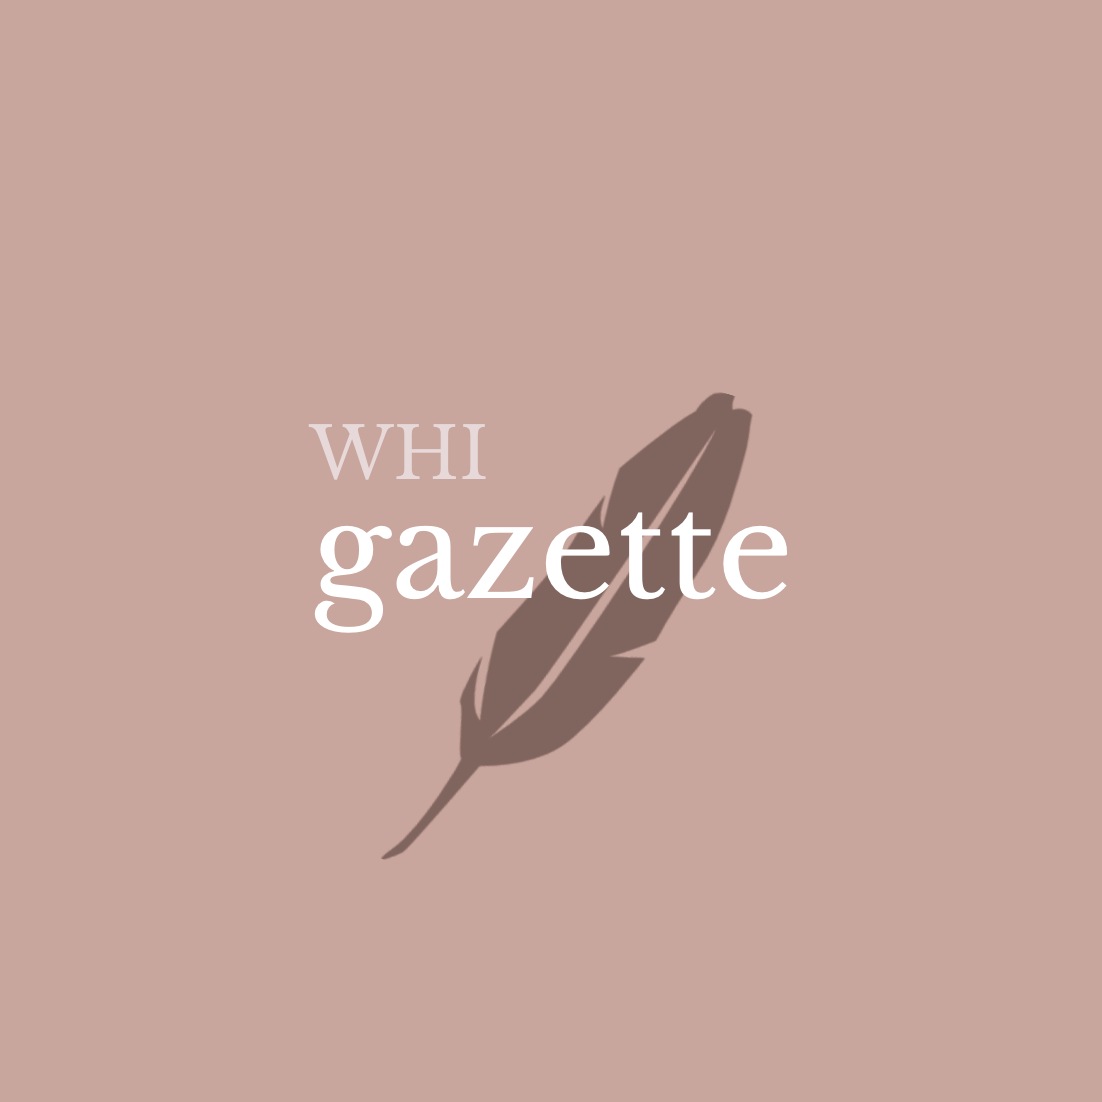 aesthetic, writersteam, and weheartitgazette image